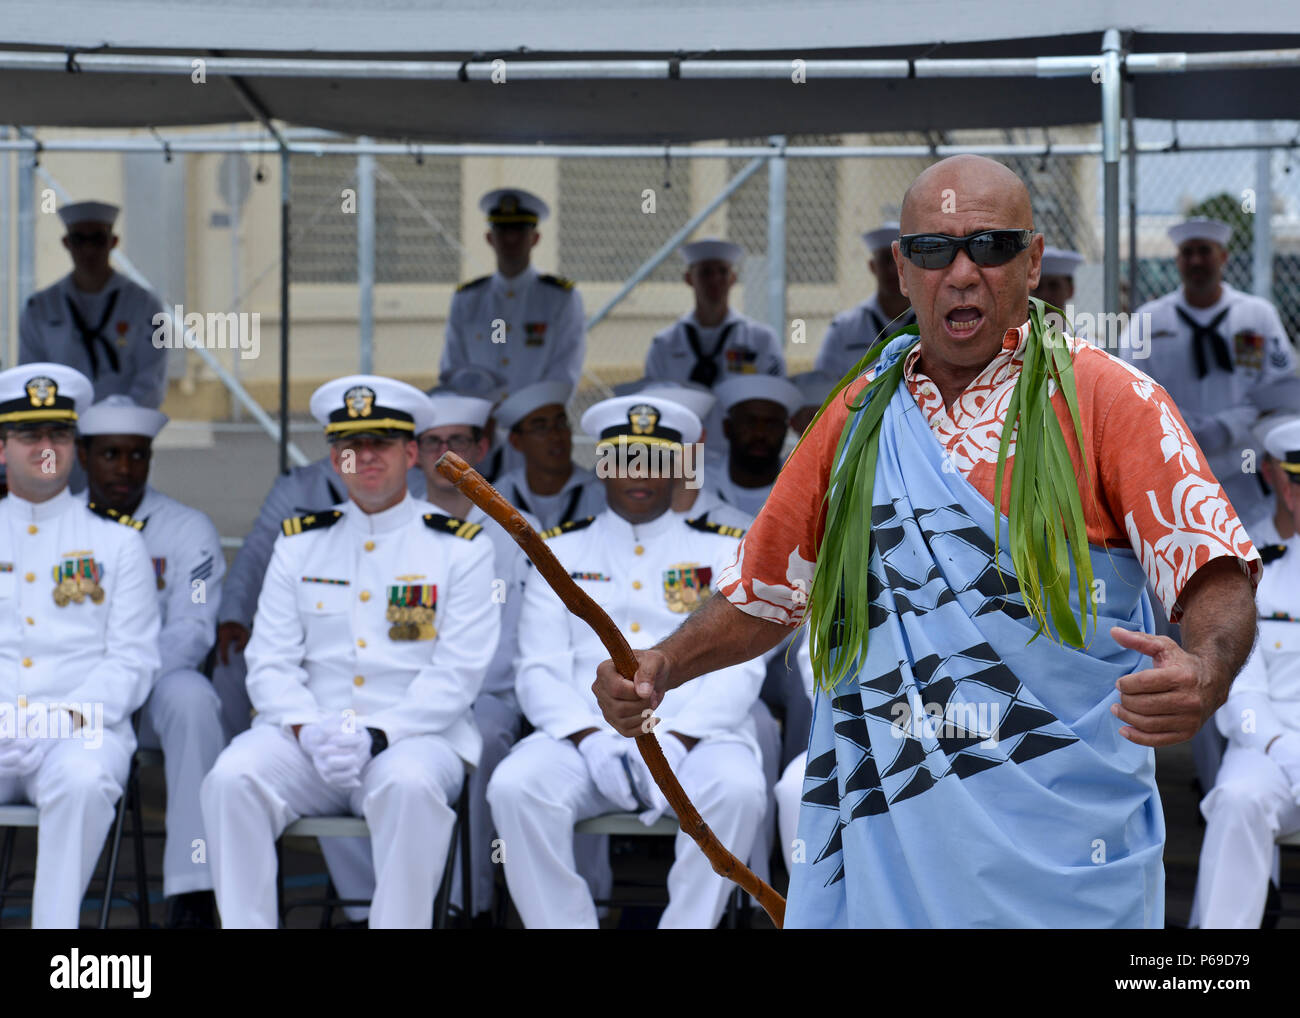 160530-N-LY160-489 JOINT BASE PEARL HARBOR-HICKAM, Hawaii (May 30, 2016) Tom Stone performs a Pula Aloha, a traditional Hawaiian blessing, during a Memorial Day decommissioning ceremony of the Los Angeles-class fast-attack submarine USS City of Corpus Christi (SSN 705) at Joint Base Pearl Harbor-Hickam. City of Corpus Christi concluded 33 years of service as the second U.S. warship to be named after Corpus Christi, Texas. (U.S. Navy photo by Mass Communication Specialist 2nd Class Michael H. Lee) - Stock Image